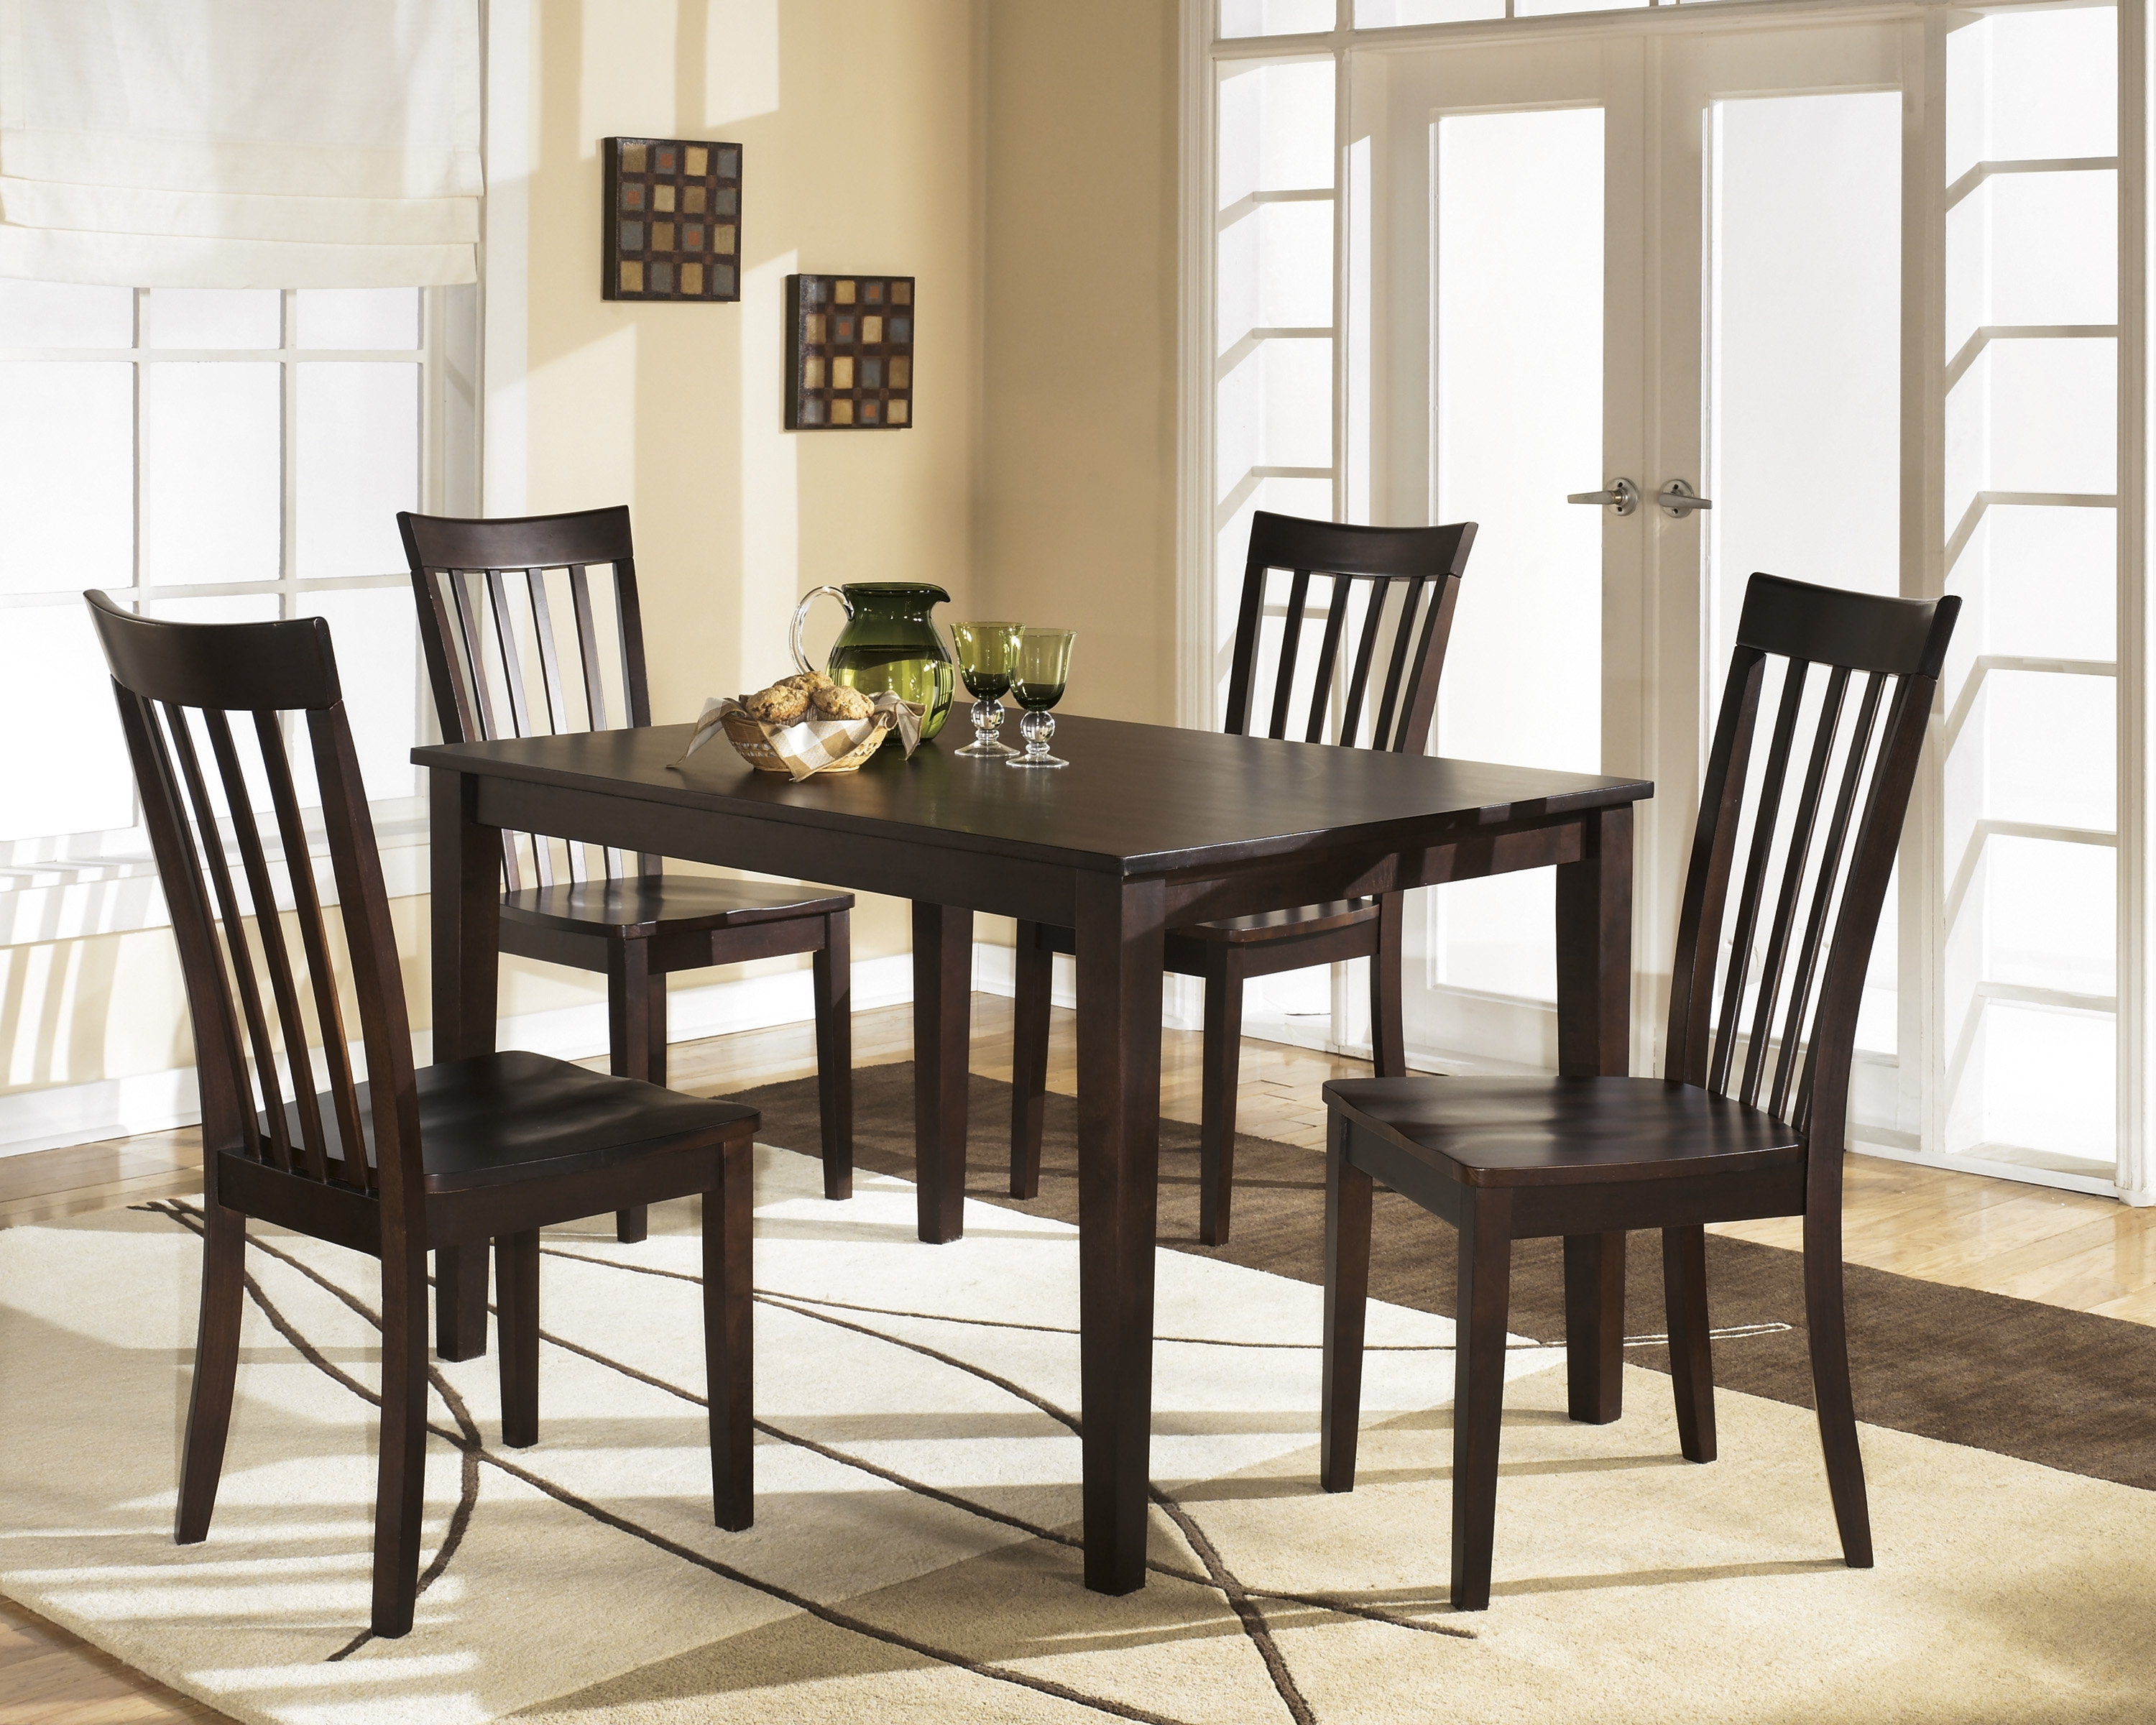 Well Liked Palazzo 7 Piece Dining Sets With Pearson White Side Chairs Inside Https://www.localfurnitureoutlet/mattresses (View 25 of 25)